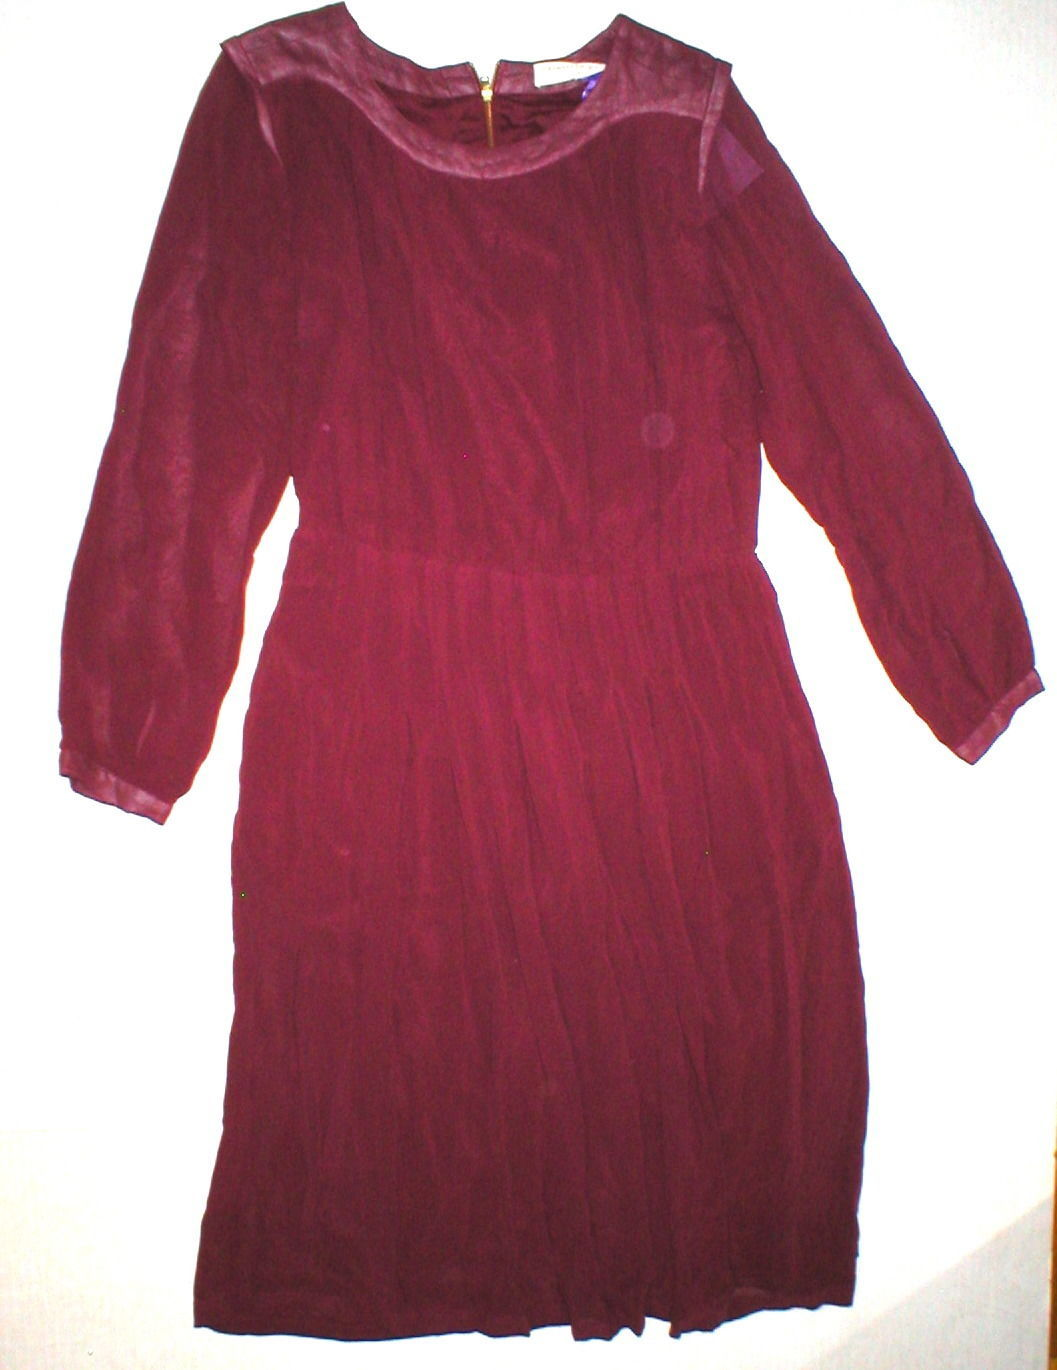 New Womens 4 NWT Designer Red Valentine Gauthier Dress Silk Long Sleeves 38 FR